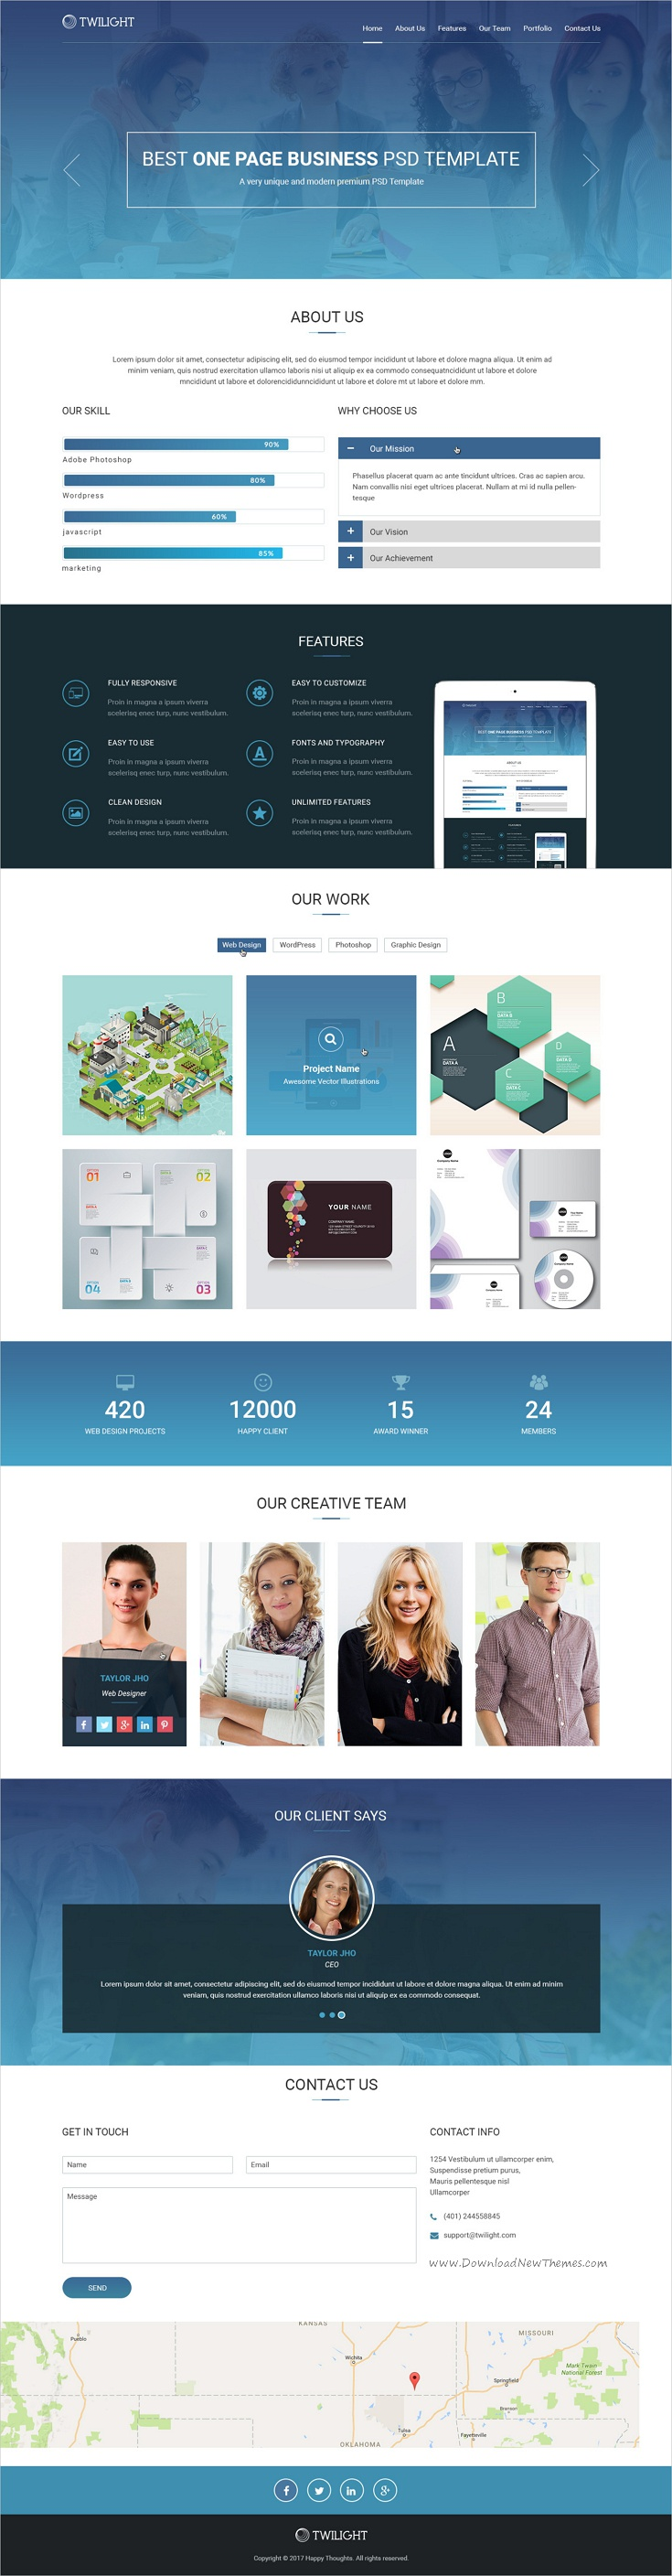 Twilight one page business psd template pinterest psd templates twilight is a wonderful onepage photoshop template for creative business website download now wajeb Choice Image